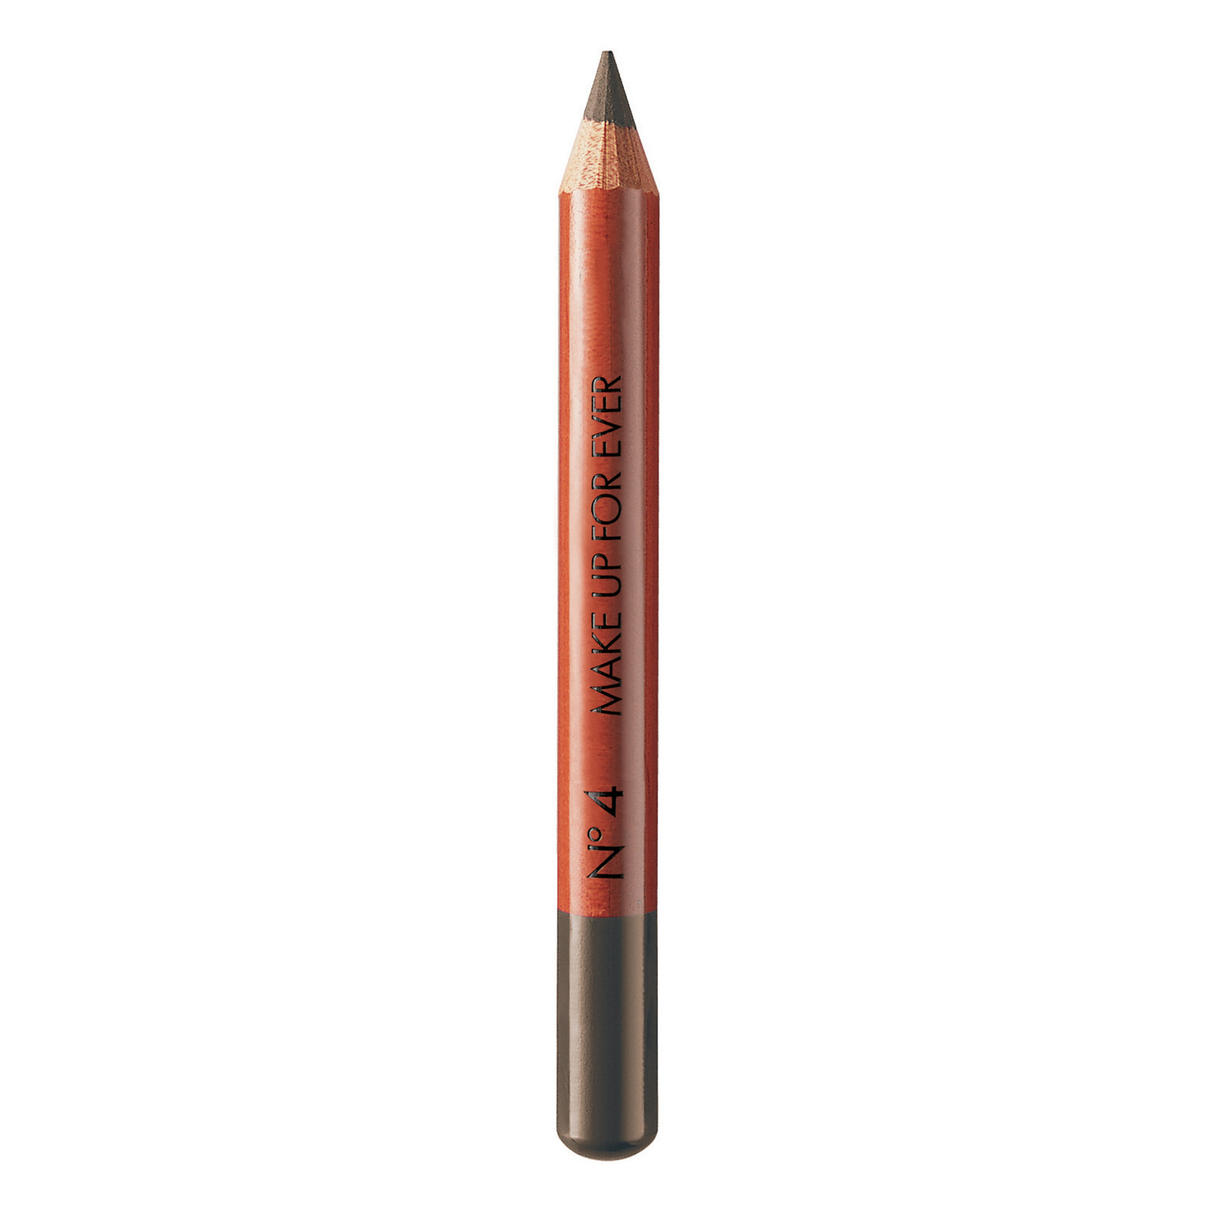 Makeup Forever Eyebrow Pencil 3